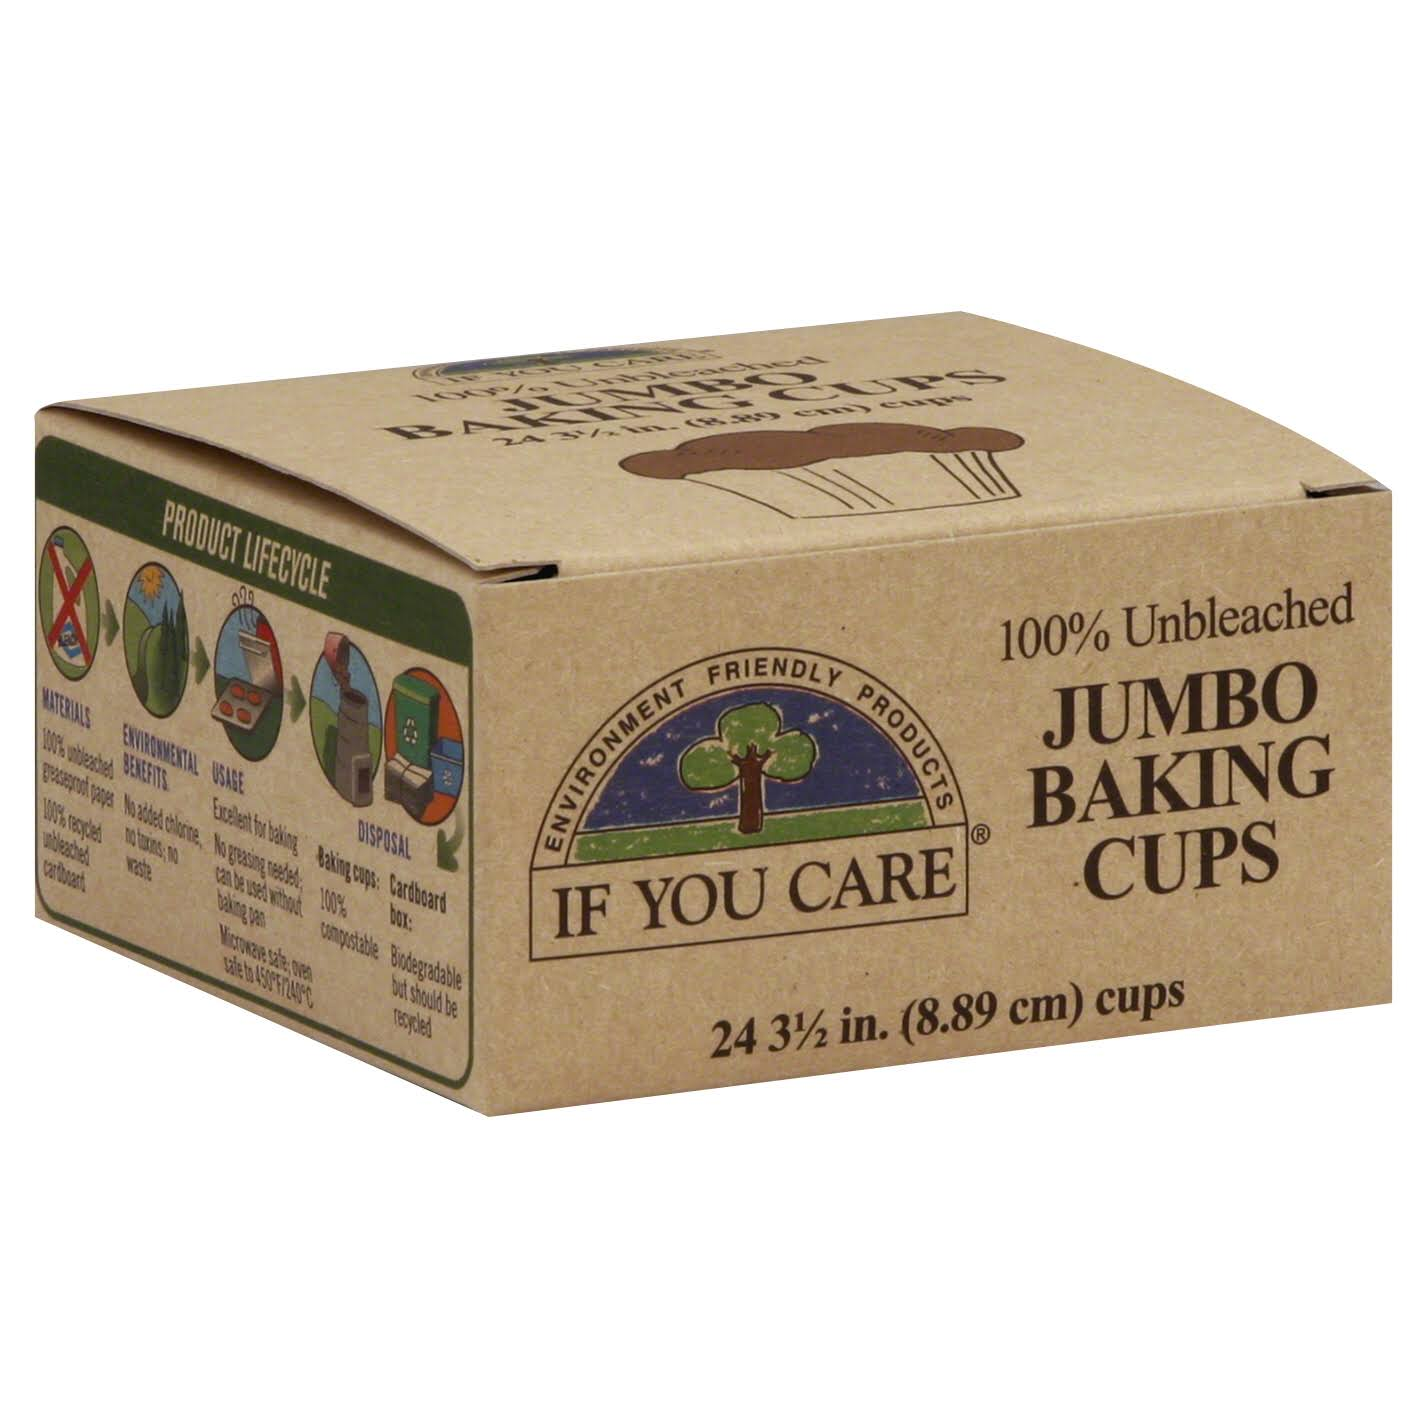 If You Care Jumbo Baking Cups - x24